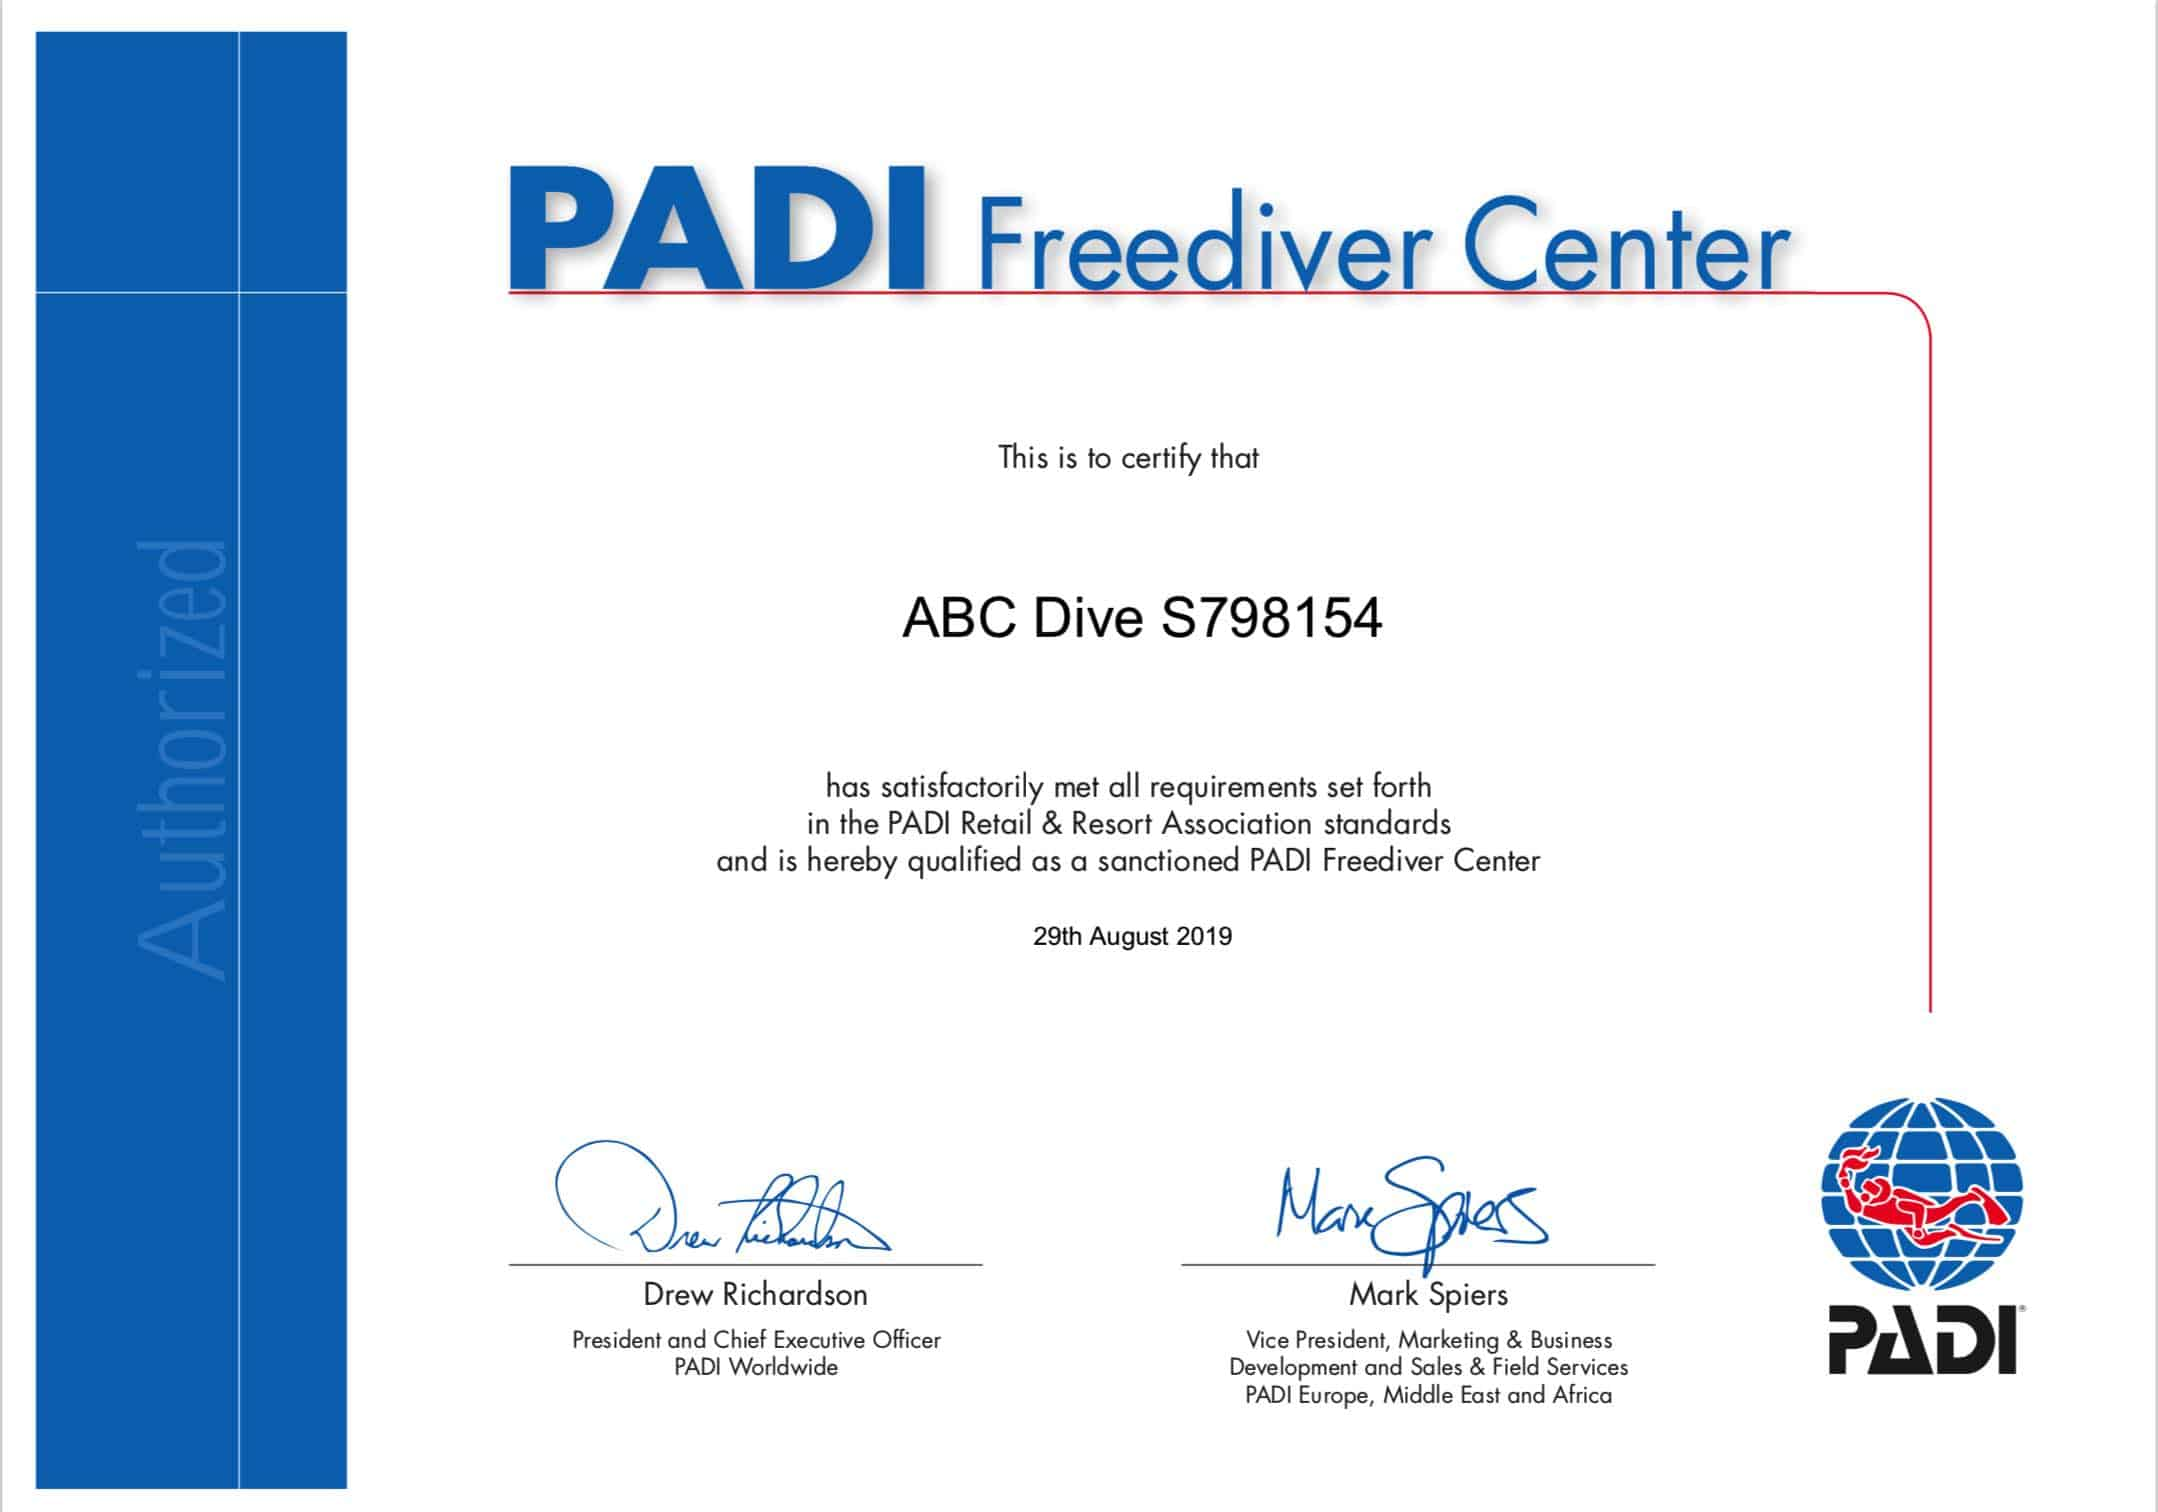 PADI Freediver Center certificaat